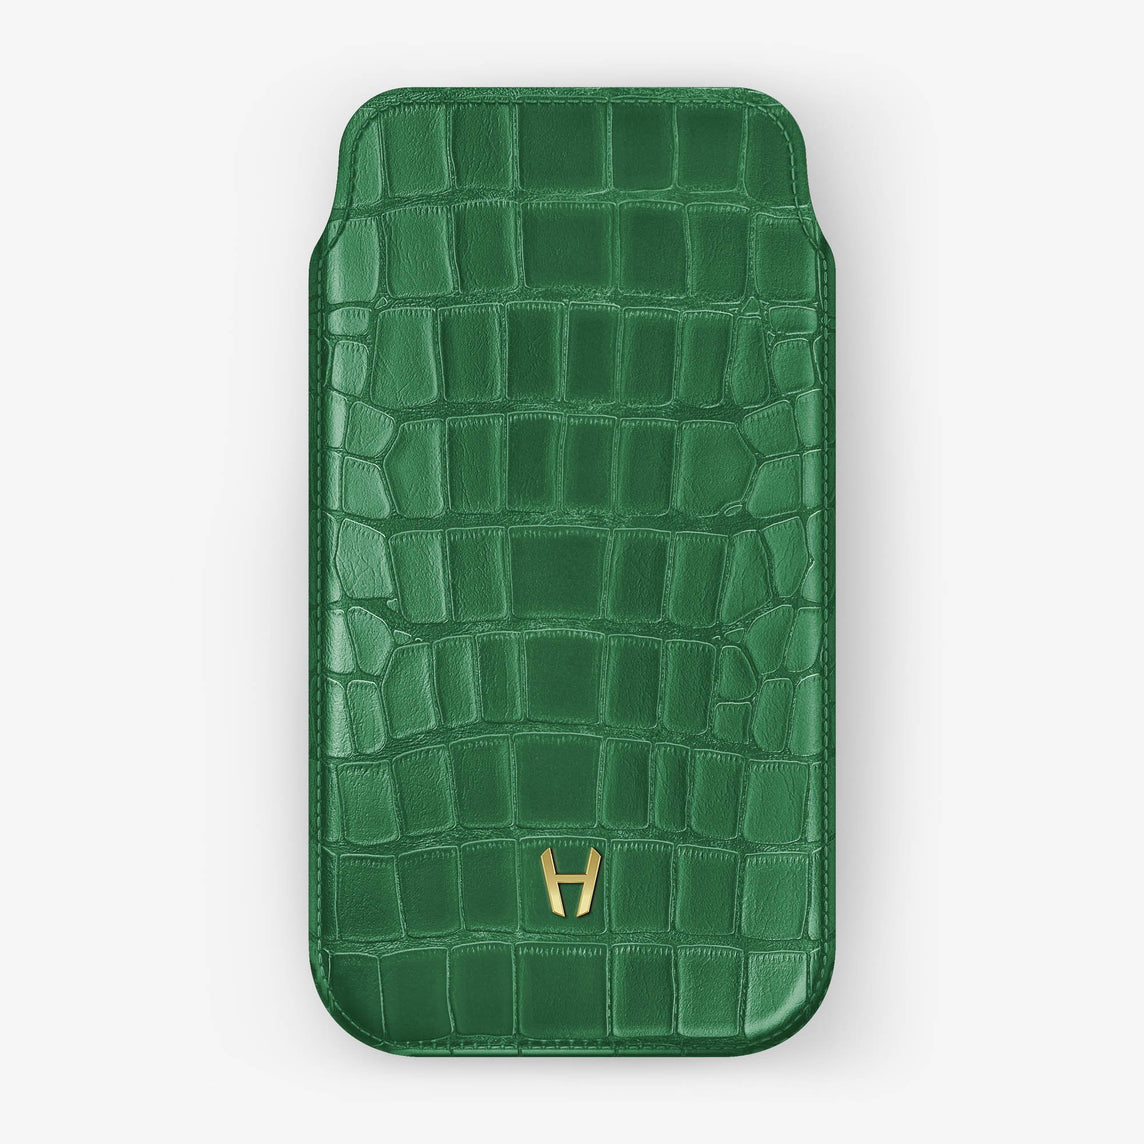 Alligator [iPhone Sleeve Case] [model:iphone-xs-case] [colour:green] [finishing:yellow-gold]